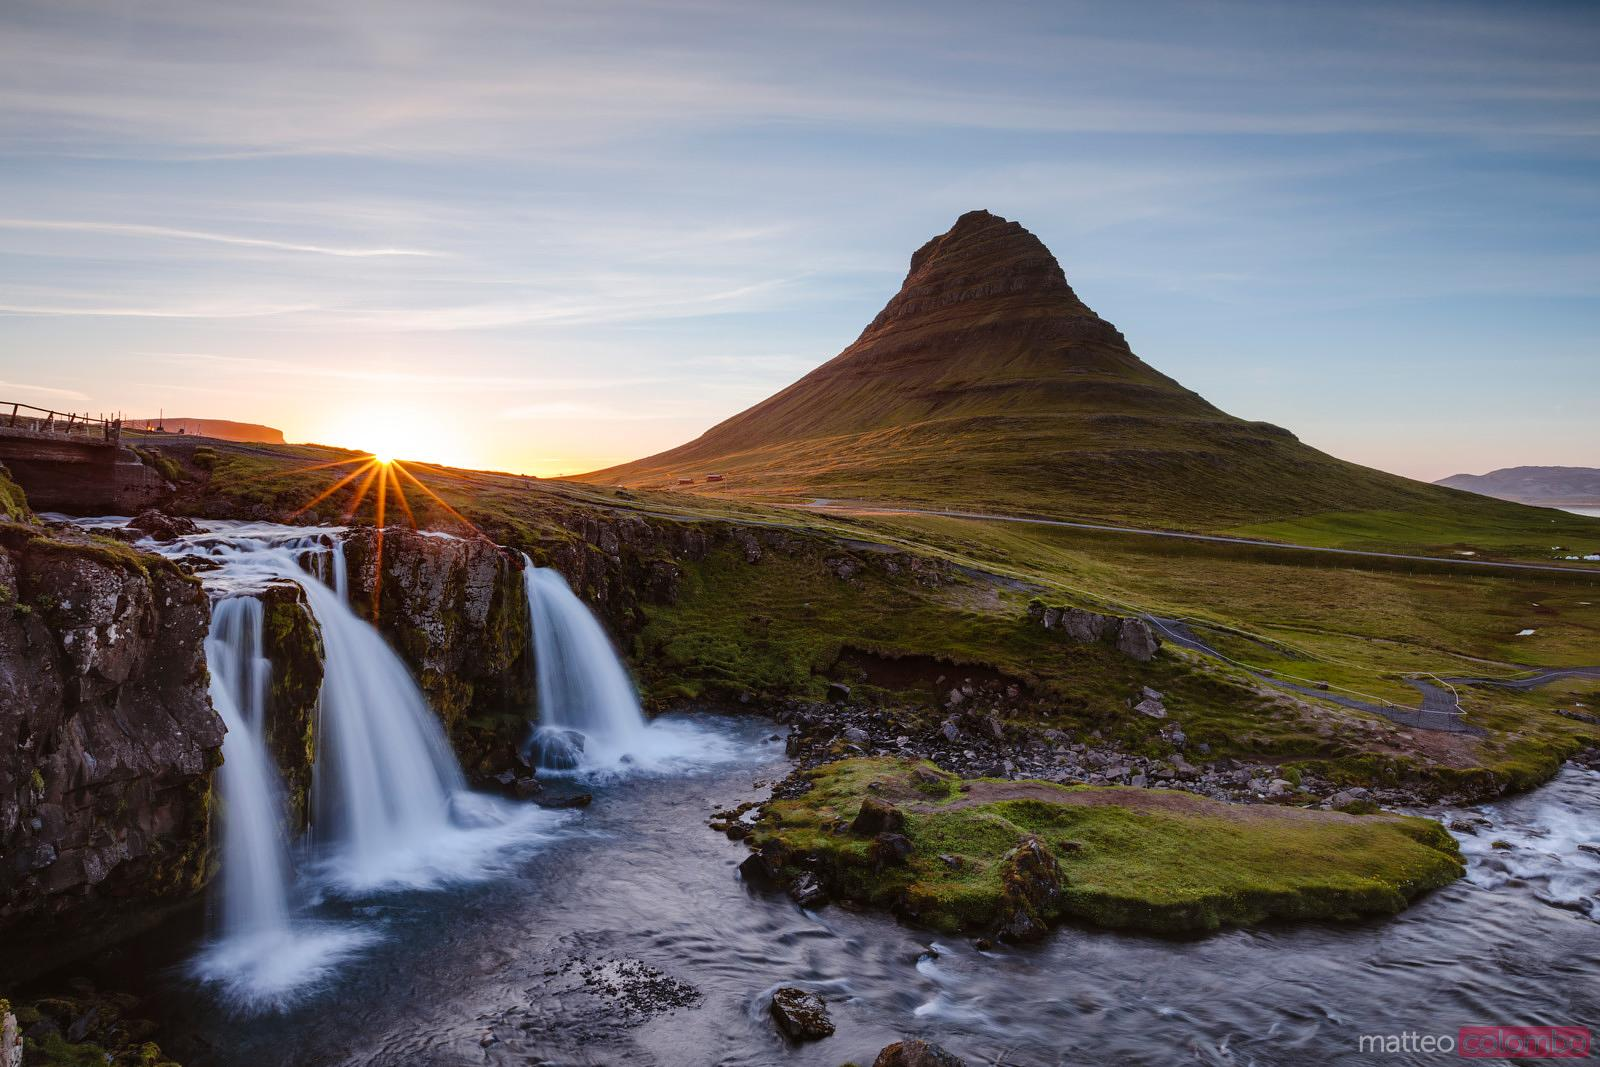 Mount Kirkjufell and waterfalls at sunset, Snaefellsnes, Iceland